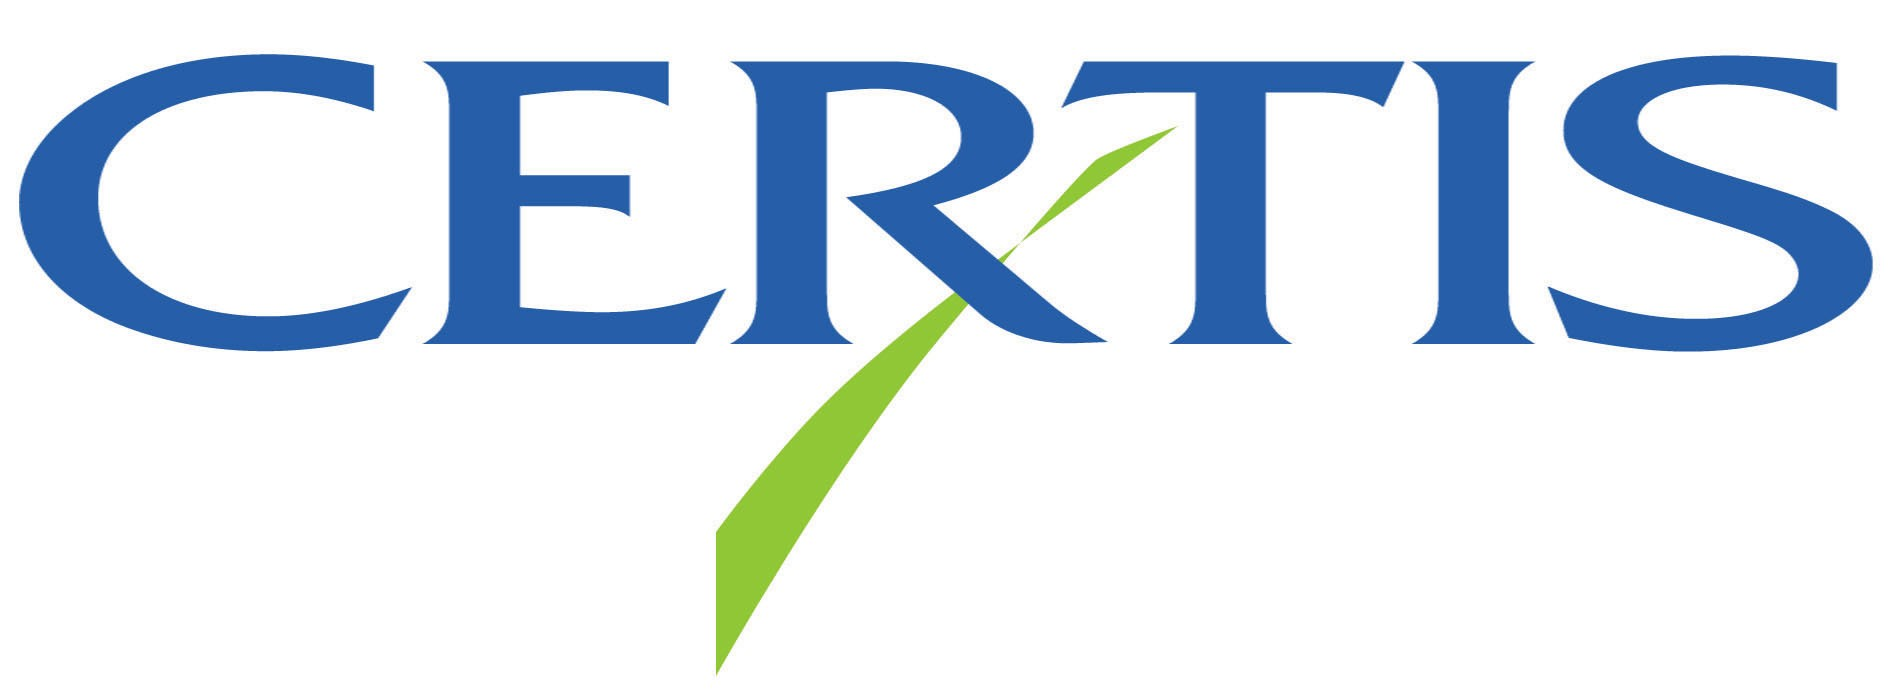 Certis logo-colour